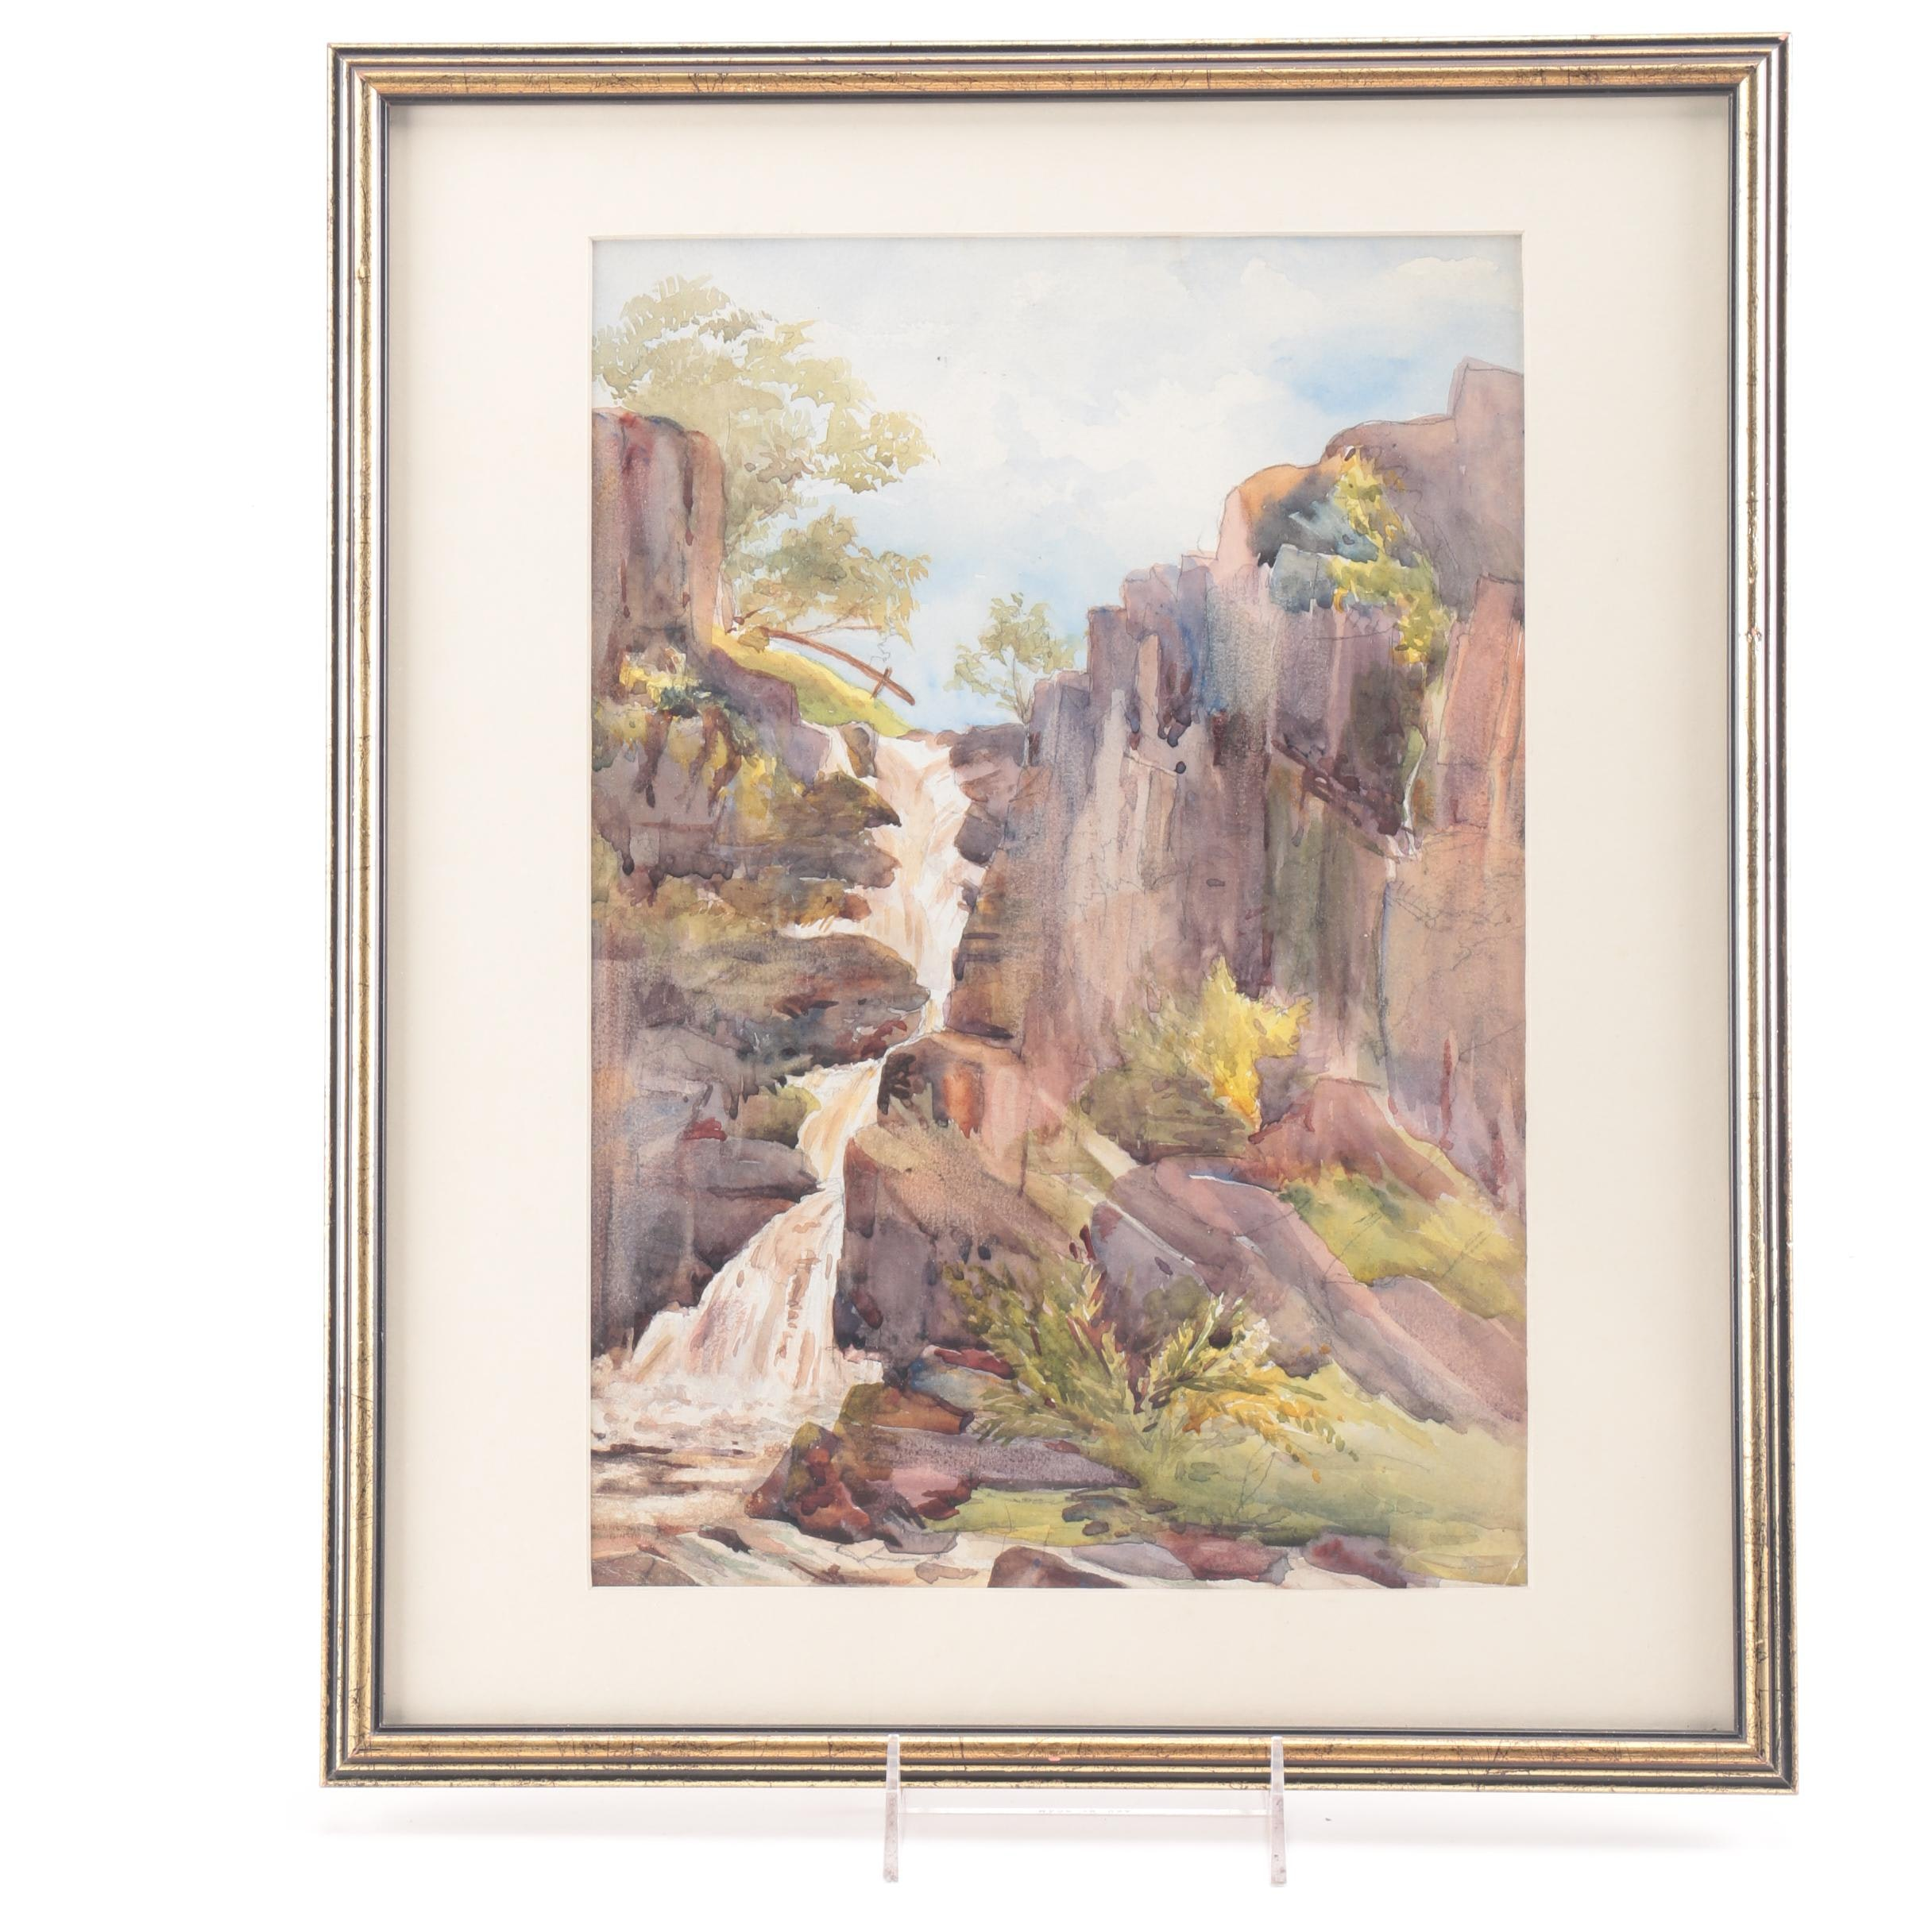 Original Watercolor Painting on paper of a Waterfall